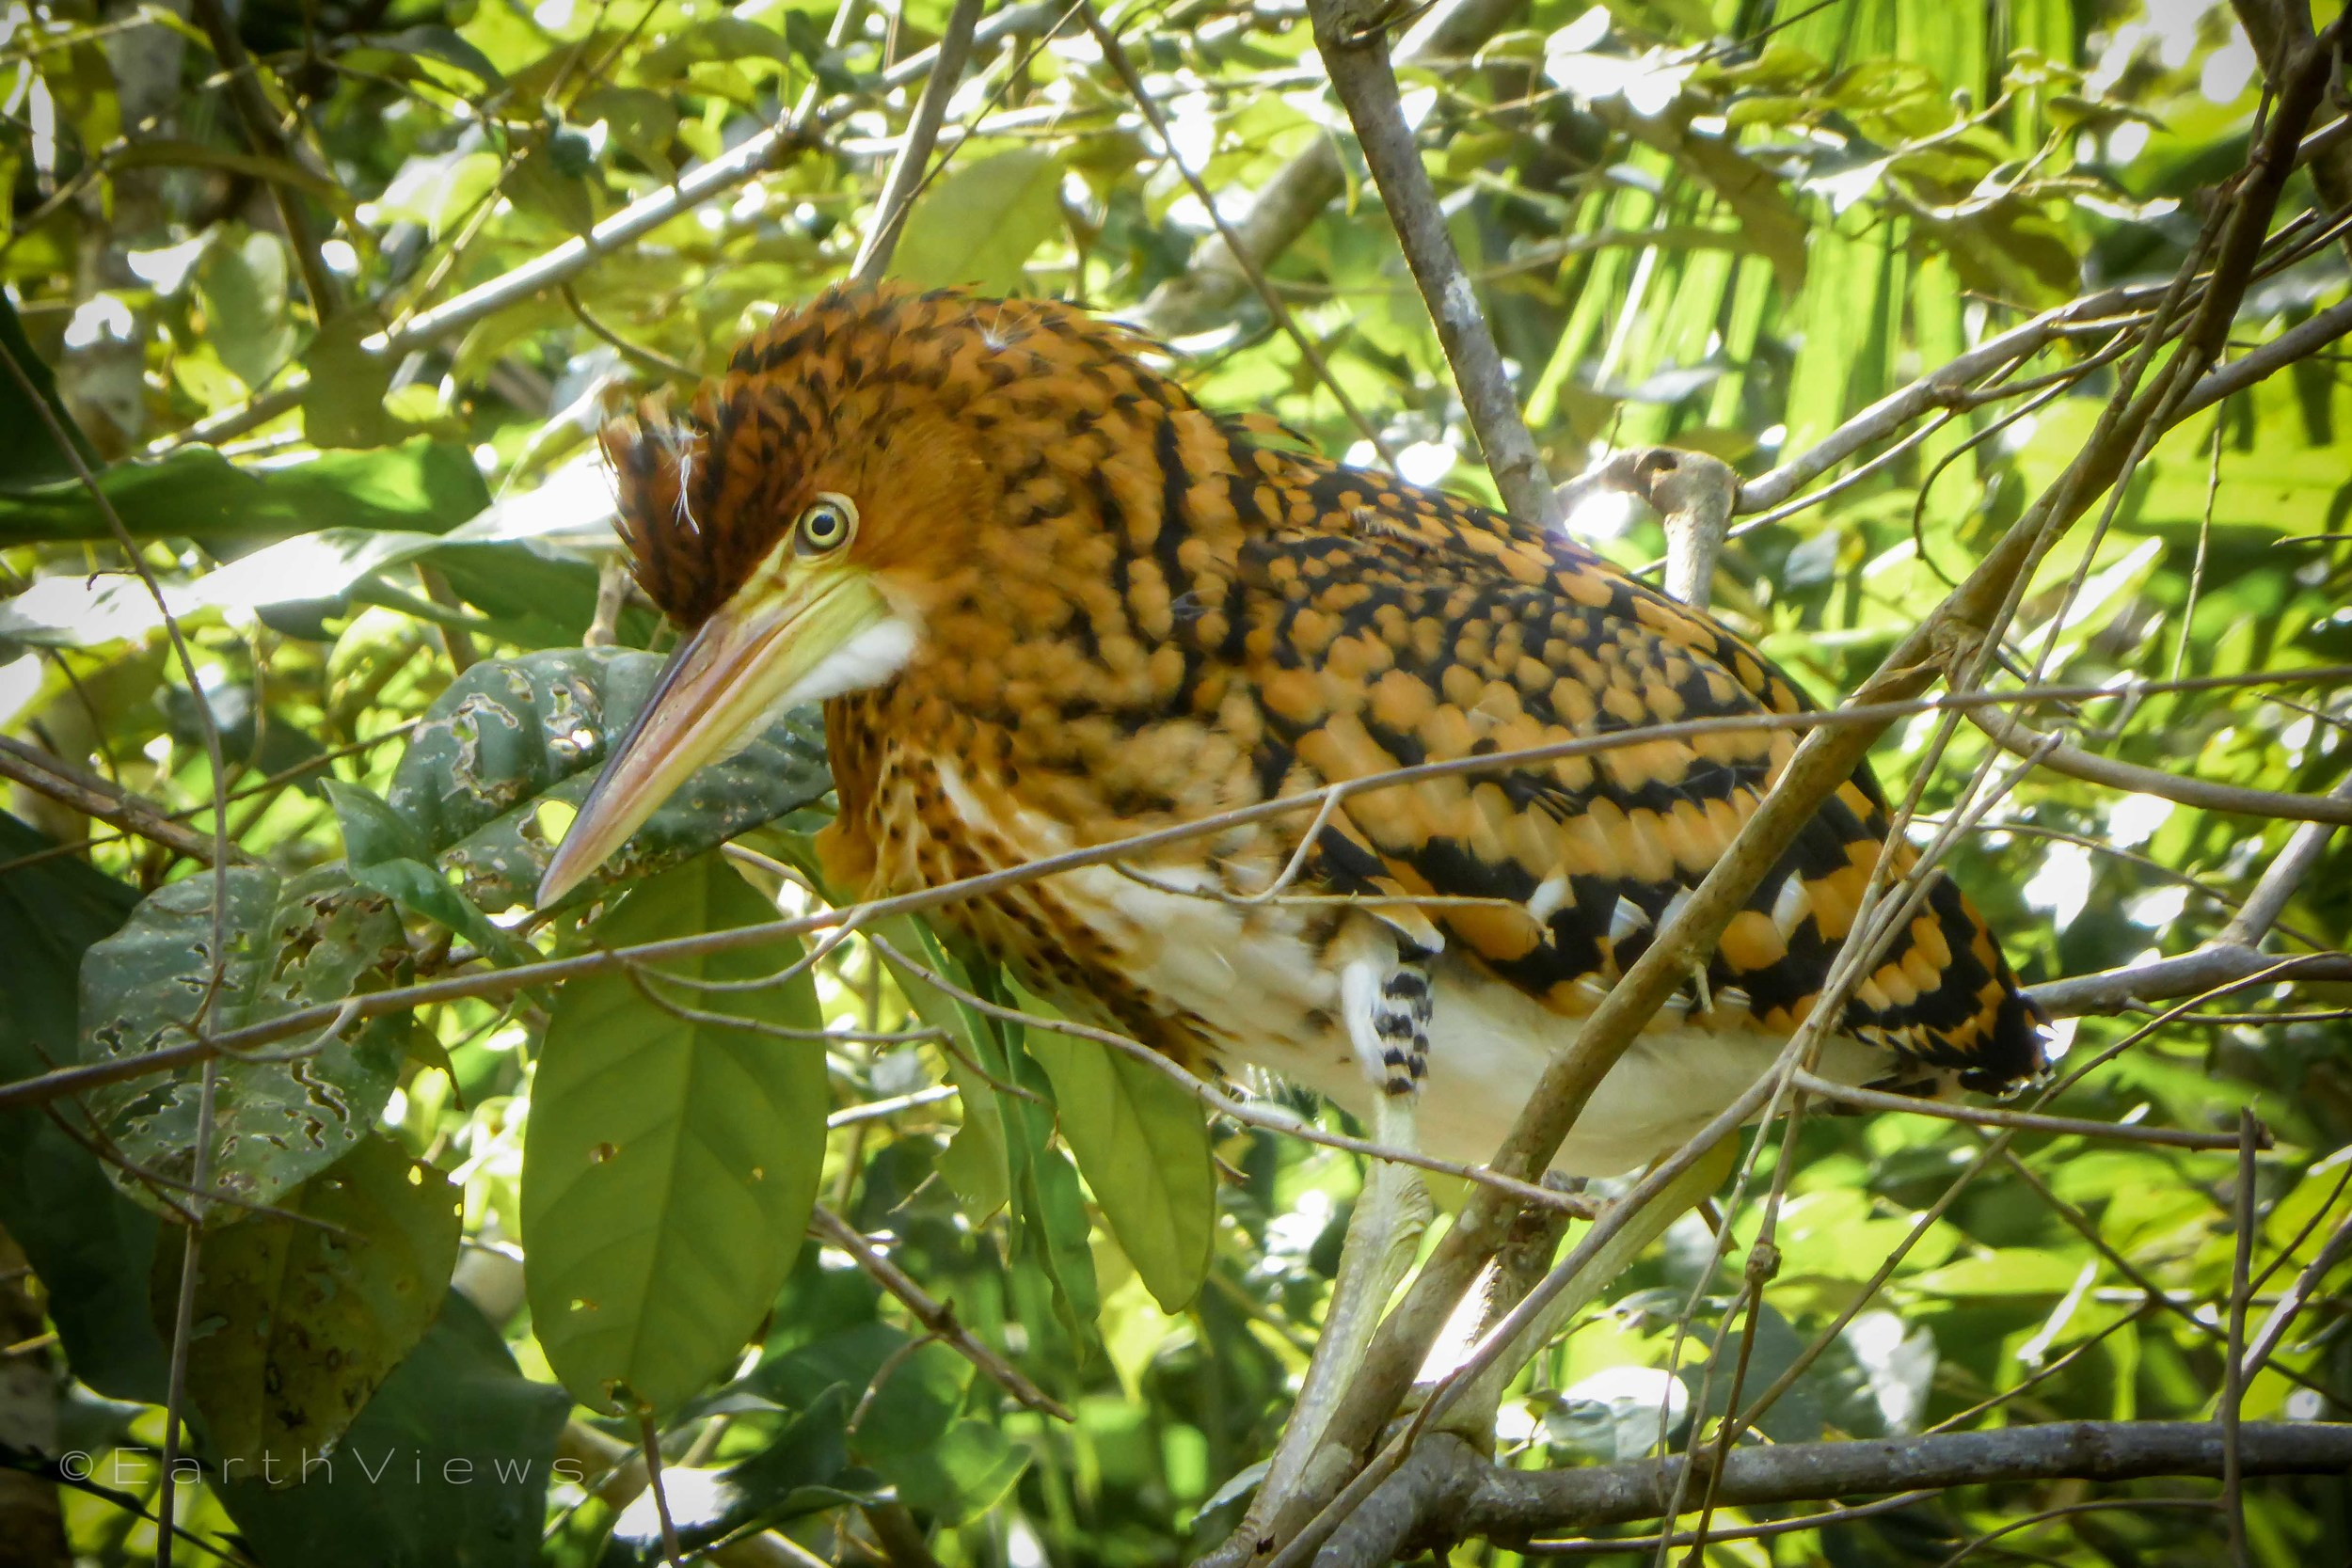 On the way to Siona Lodge: a young tiger heron is trying to maintain its balance while walking on a branch.